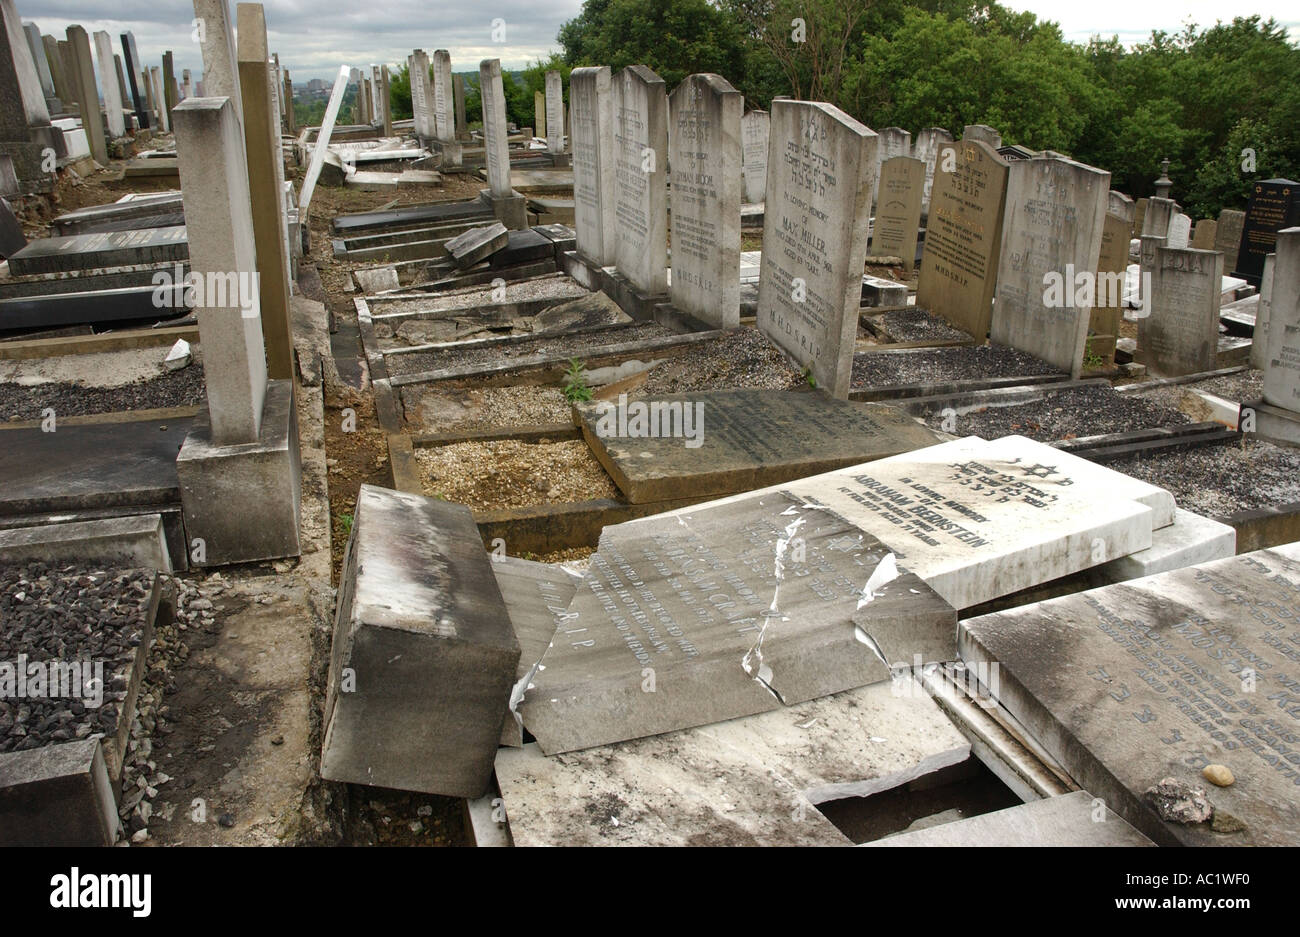 PHOTOGRAPH BY HOWARD BARLOW Desecrated JEWISH GRAVESTONES in RAINSOUGH CEMETRY NORTH MANCHESTER - Stock Image